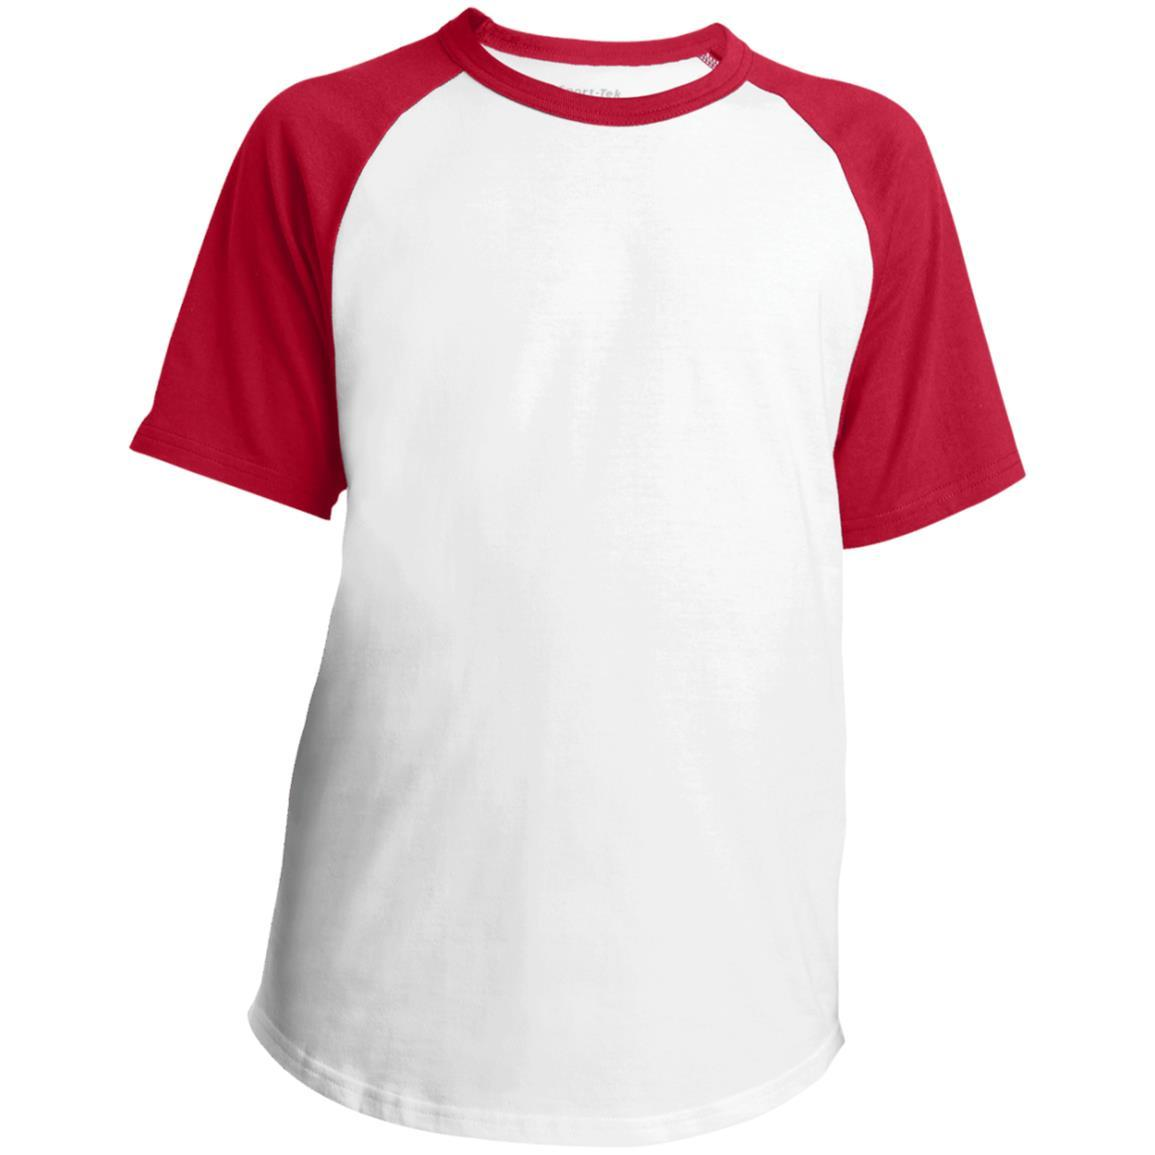 Sport-Tek Youth Short Sleeve Colorblock Raglan Jersey